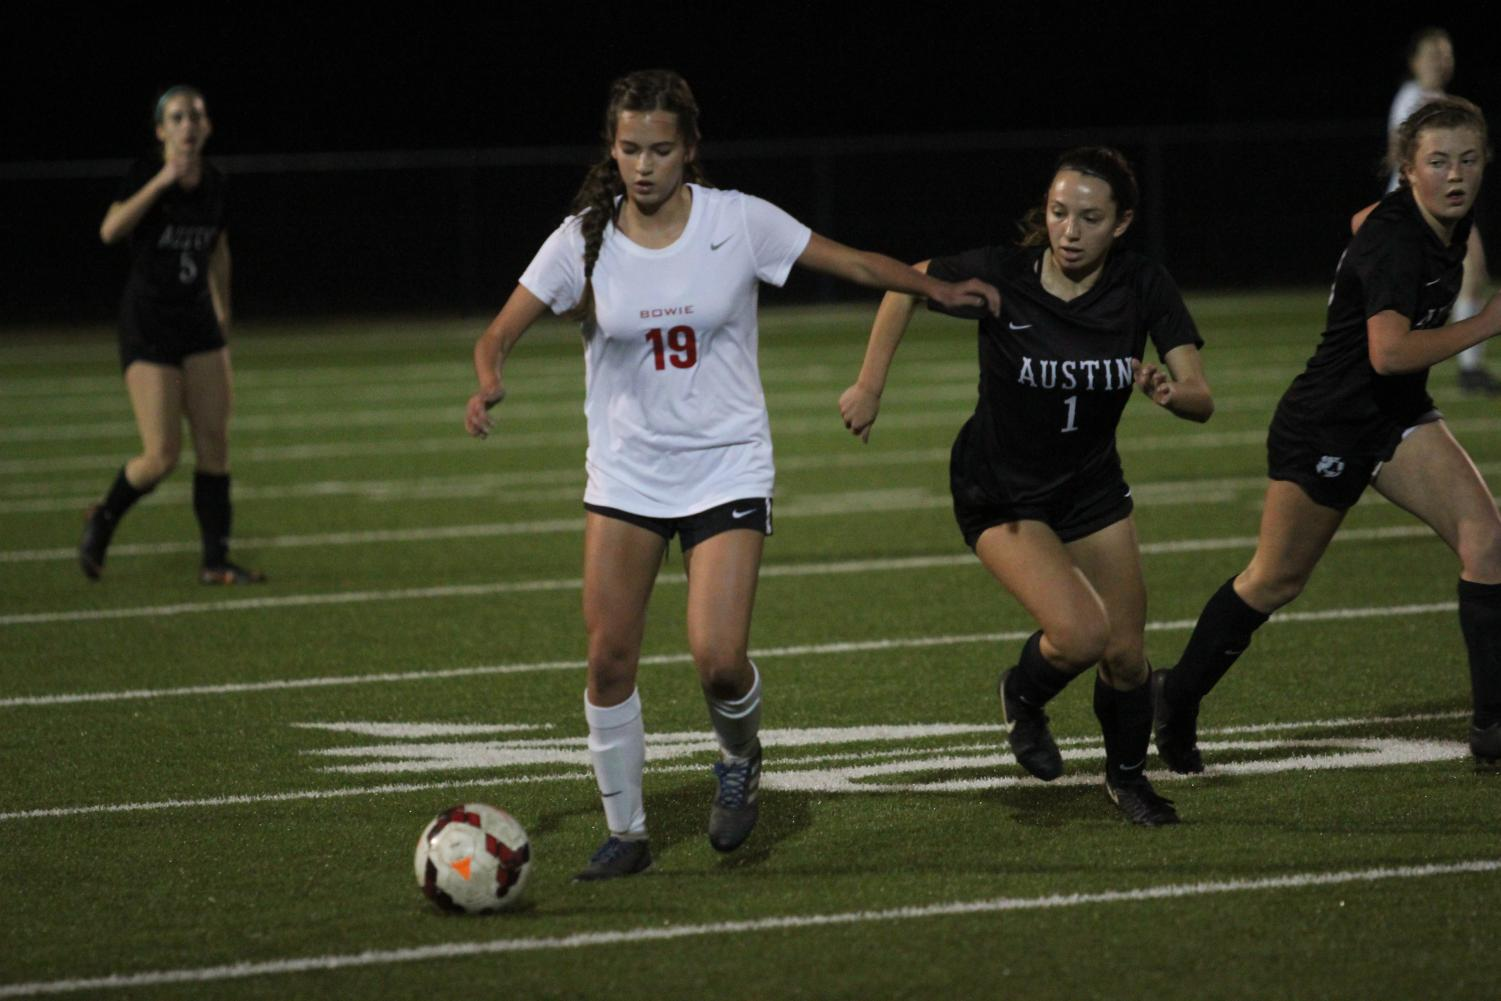 GETTING A KICK OUT OF IT: Senior Hannah Erb outpaces her opponent. Erb is one of the two team captains of the varsity girls soccer team.